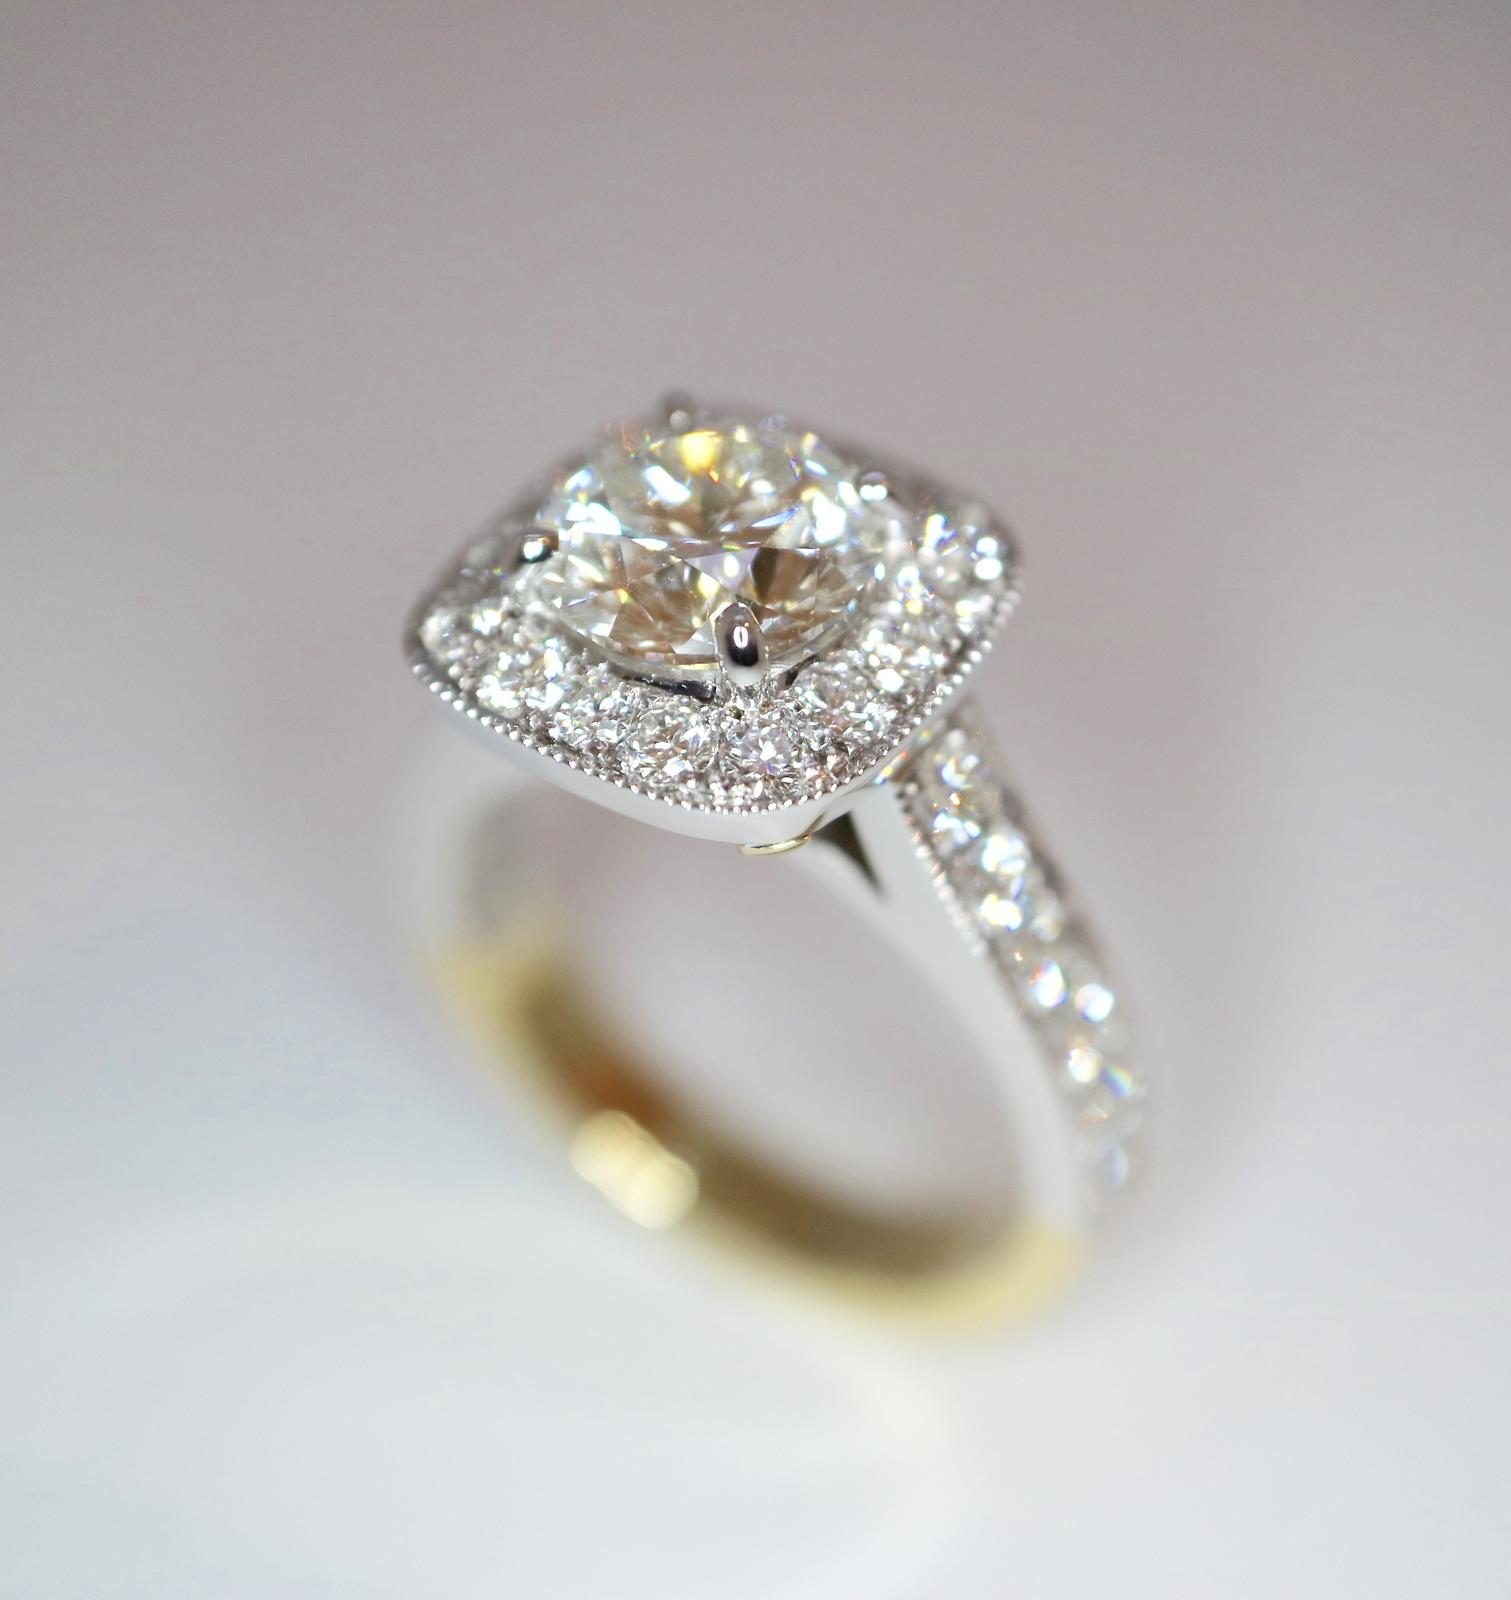 1.8ct centre certified diamond with halo handmade at a fraction of retail price.